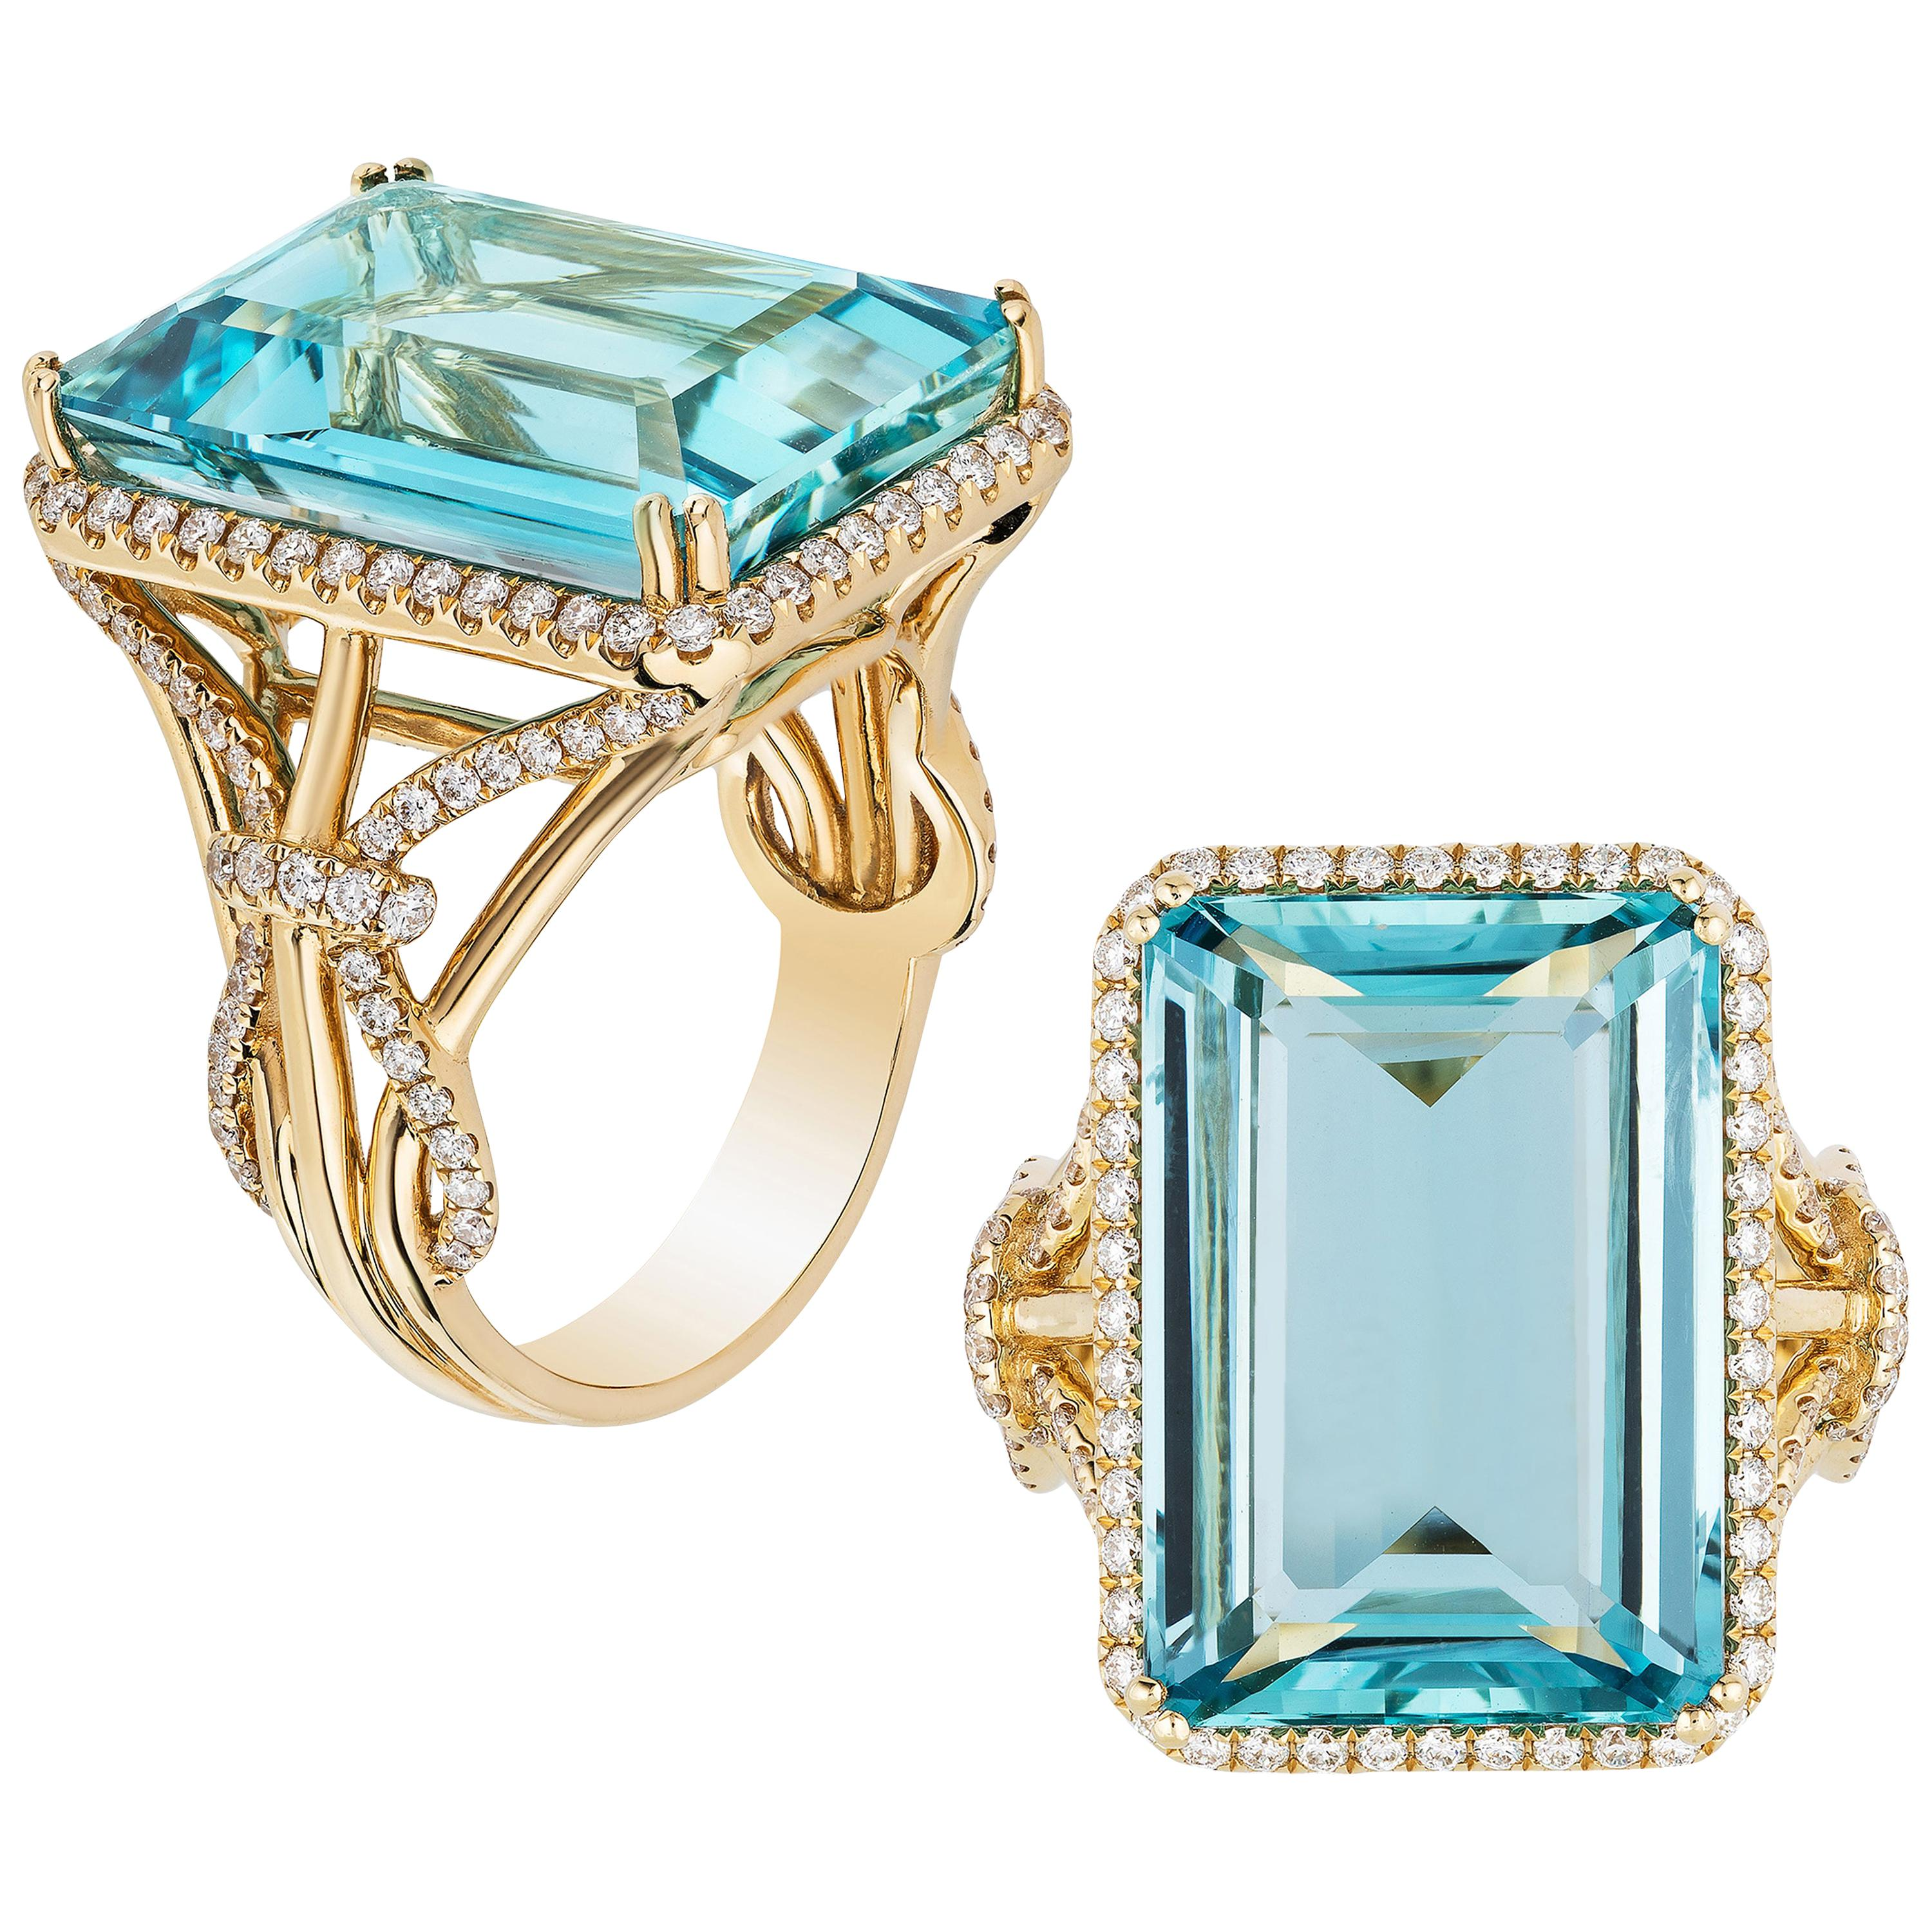 Goshwara Aqua Emerald Cut with Diamonds Ring